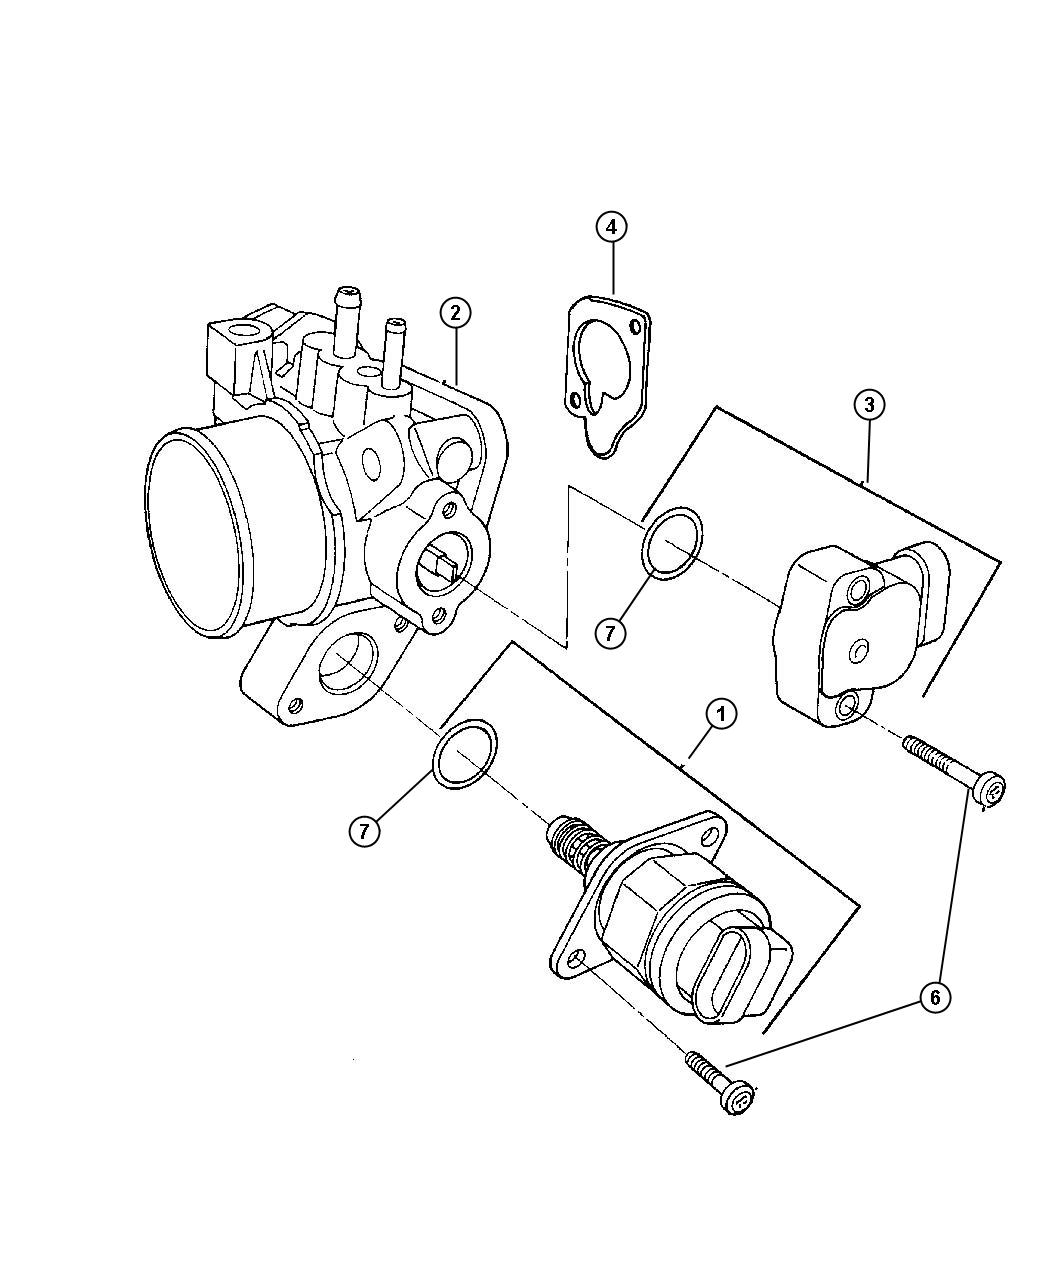 Chrysler Town & Country Throttle body. Engine, smpi, ohv